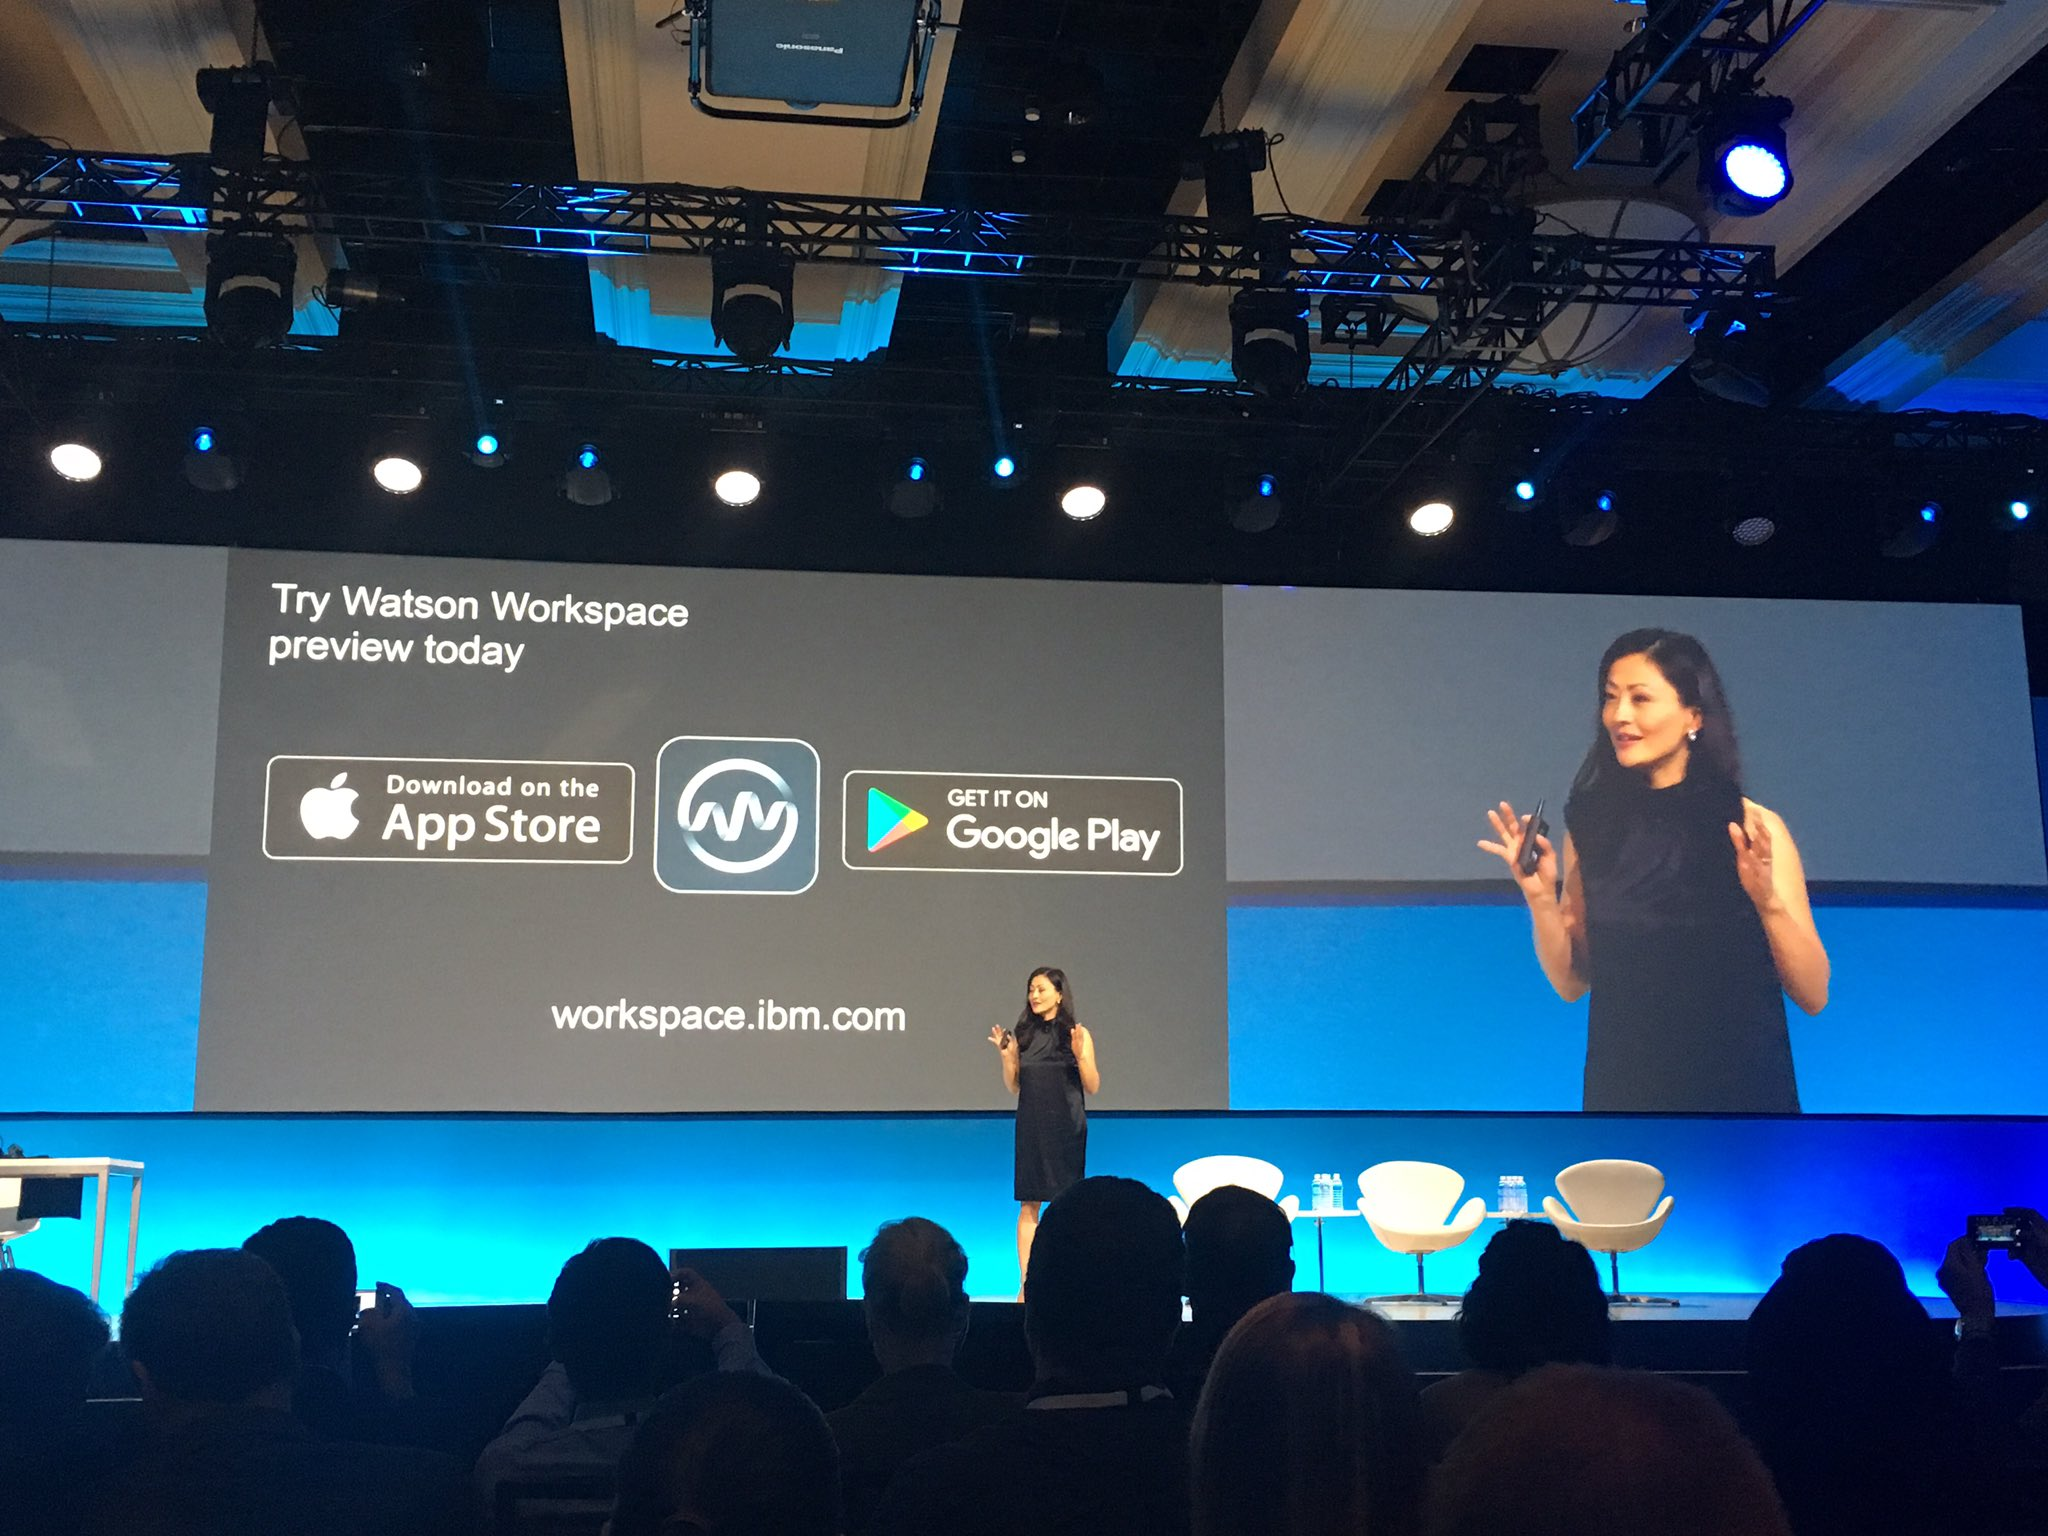 Great news! Everyone at the conference can download the Watson Workspace preview today! #ibmwow #watsonworkspace https://t.co/oBRY3TlM4b